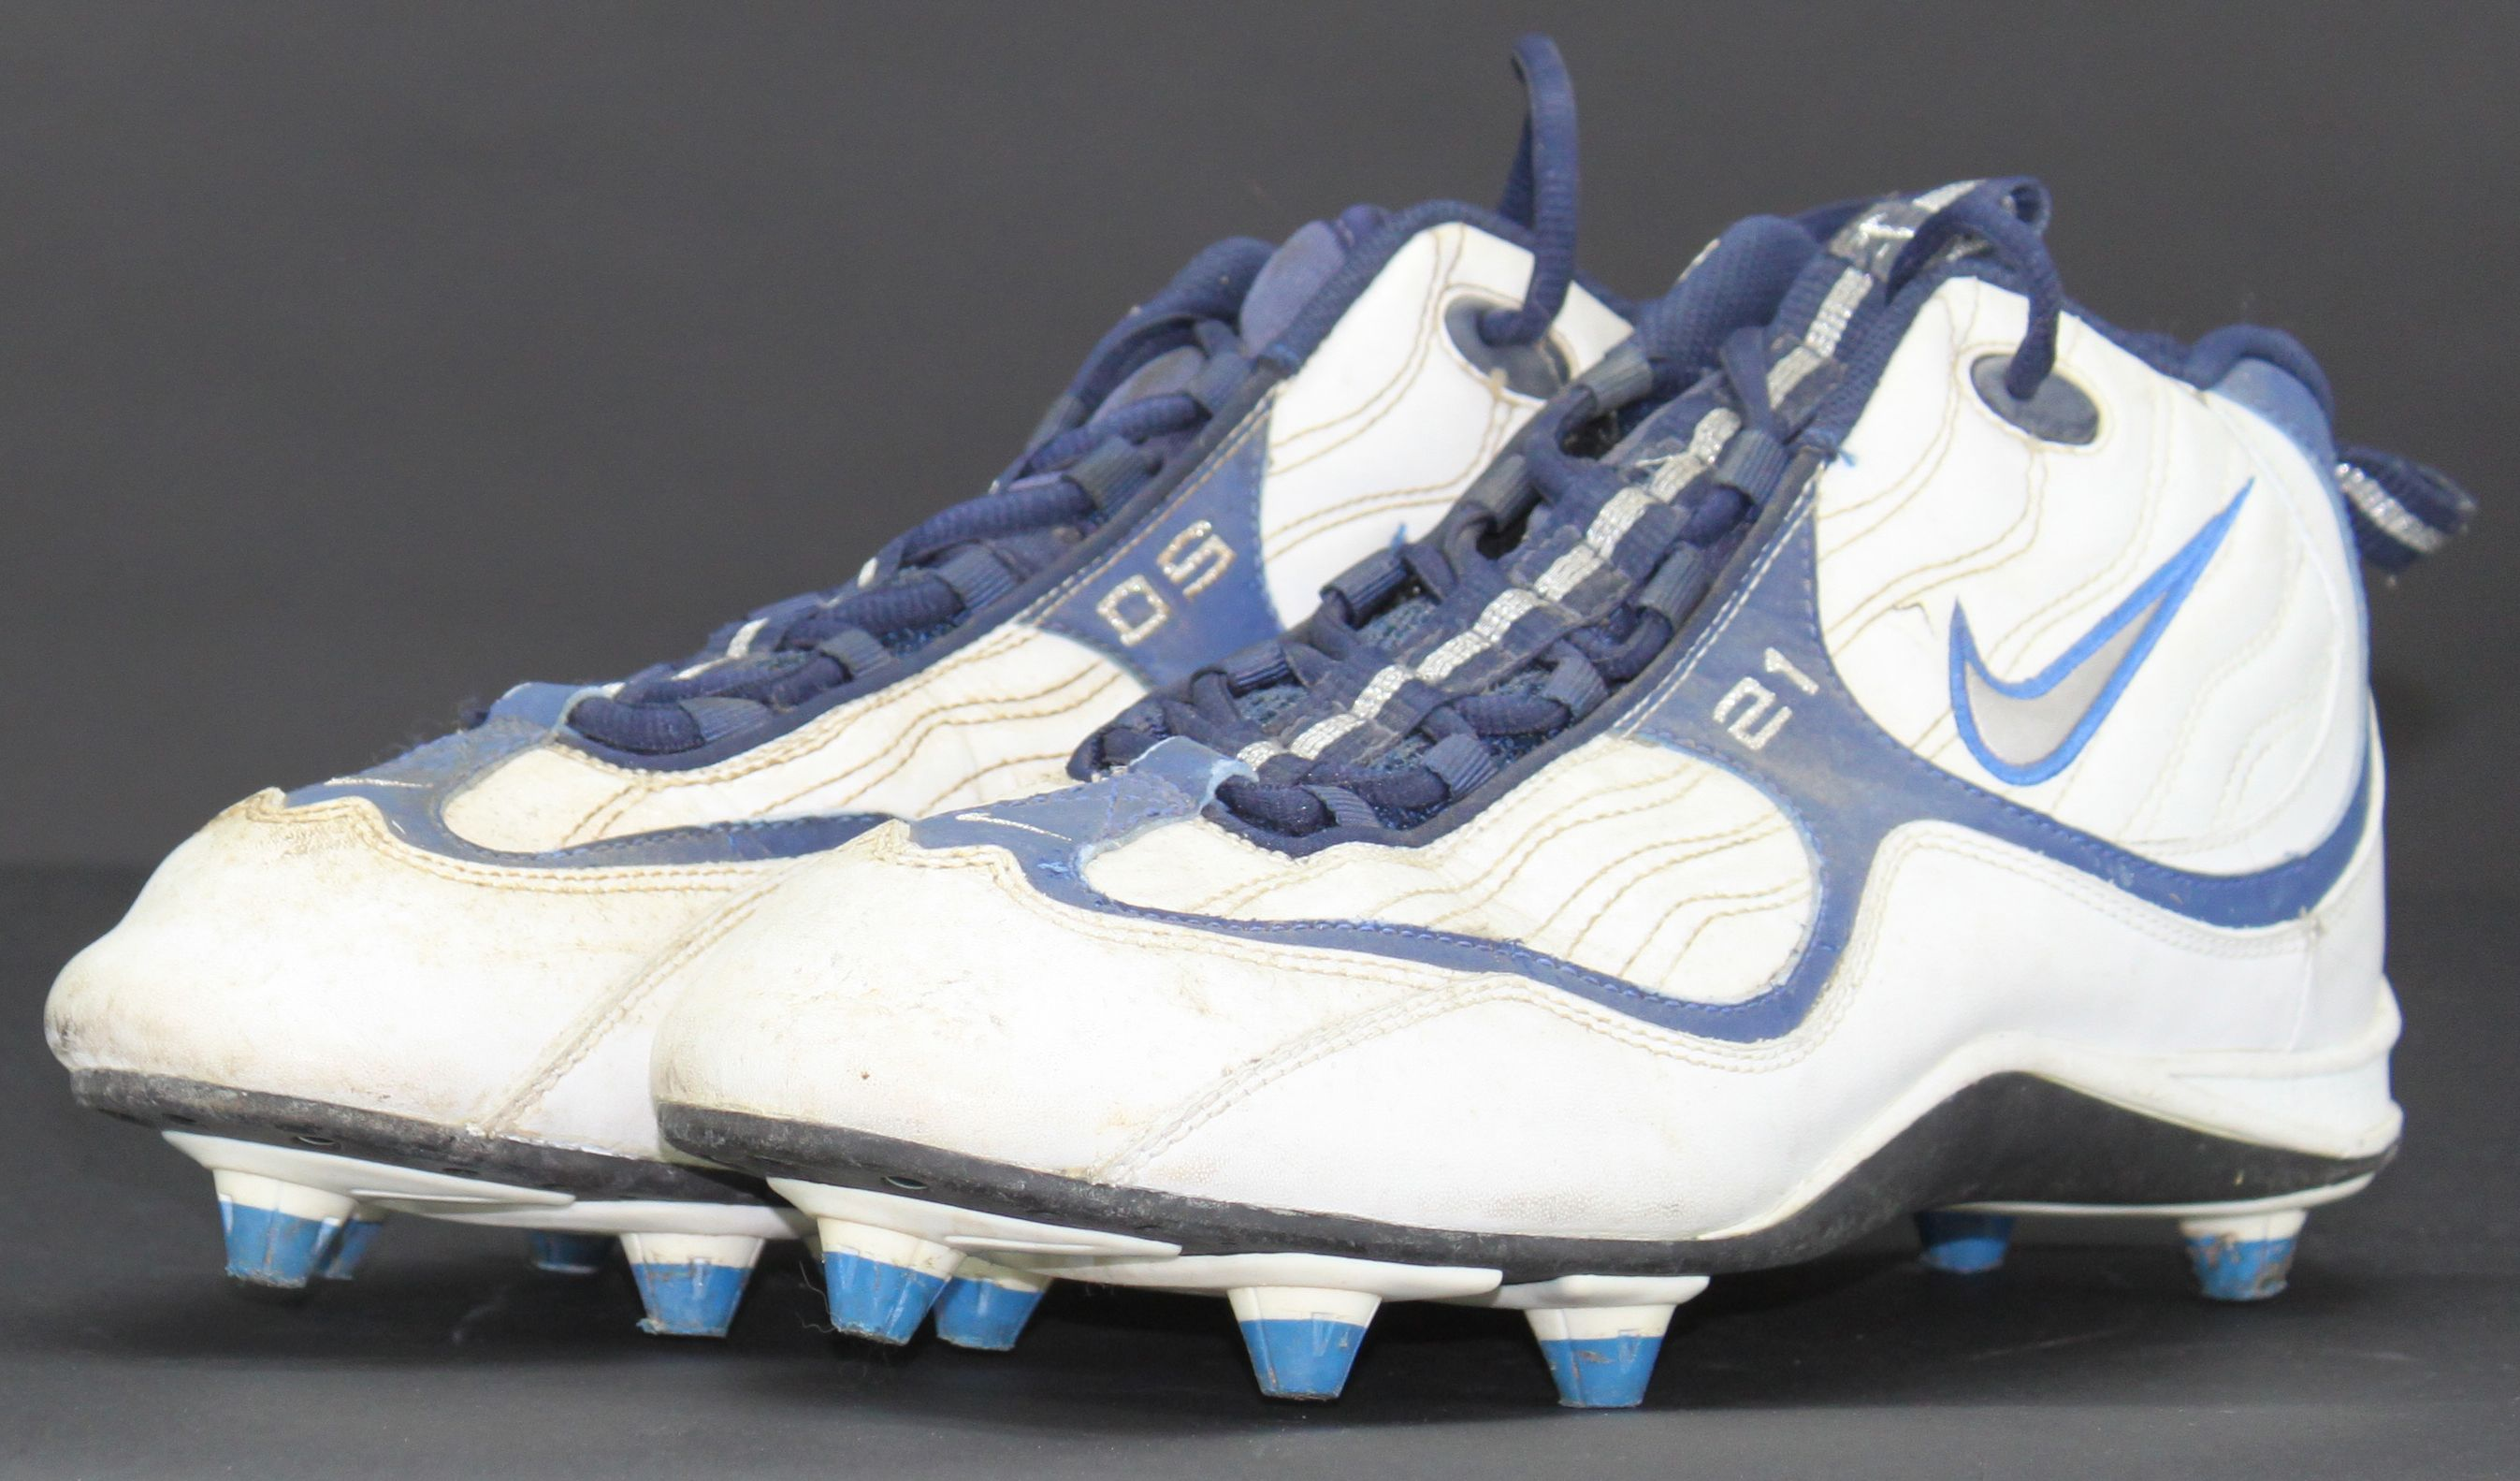 finest selection f09c3 bfec2 ... Deion Sanders Game Used Dallas Cowboys Cleats LOA ...